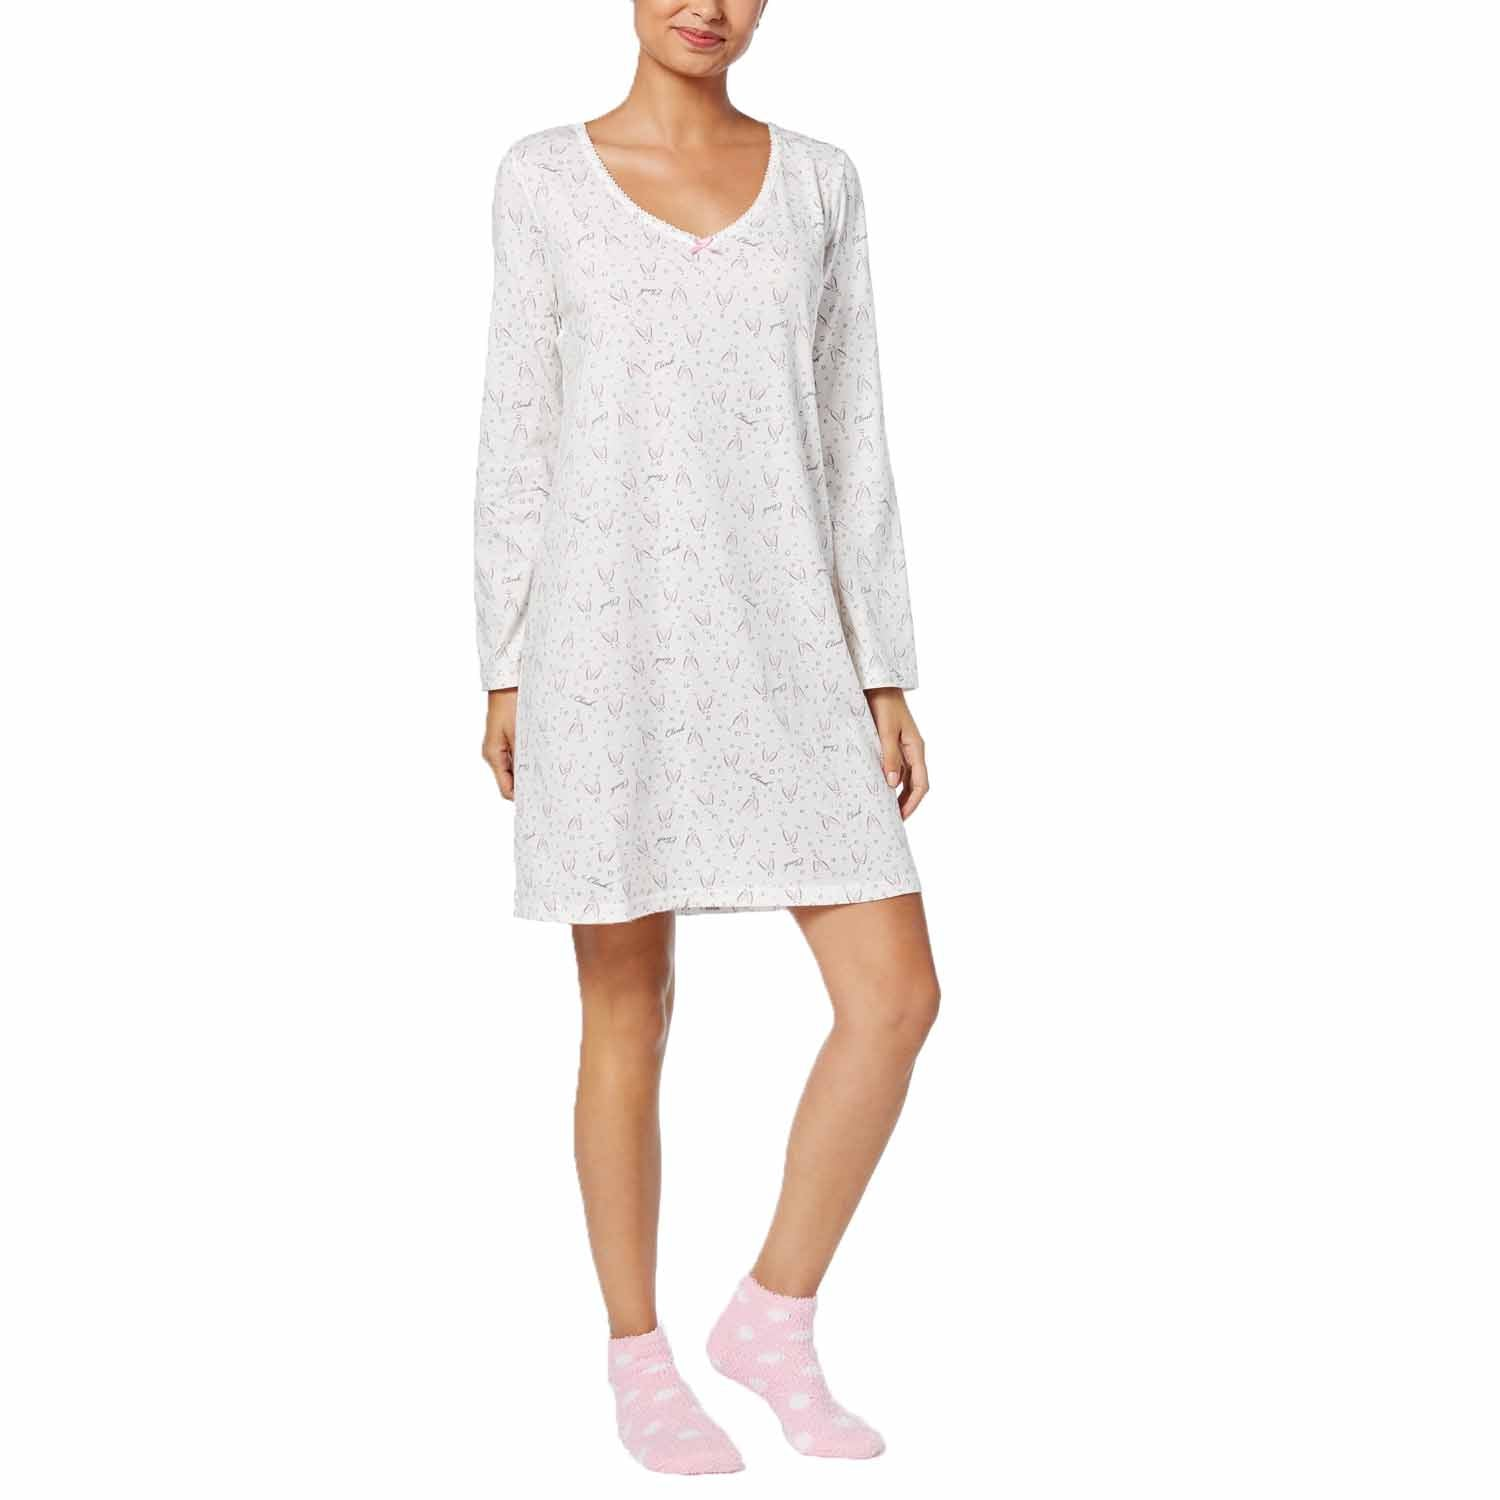 50d2673b6659 Charter Club Women's Graphic-Print Cotton Sleepshirt with Matching Socks.  Tap to expand